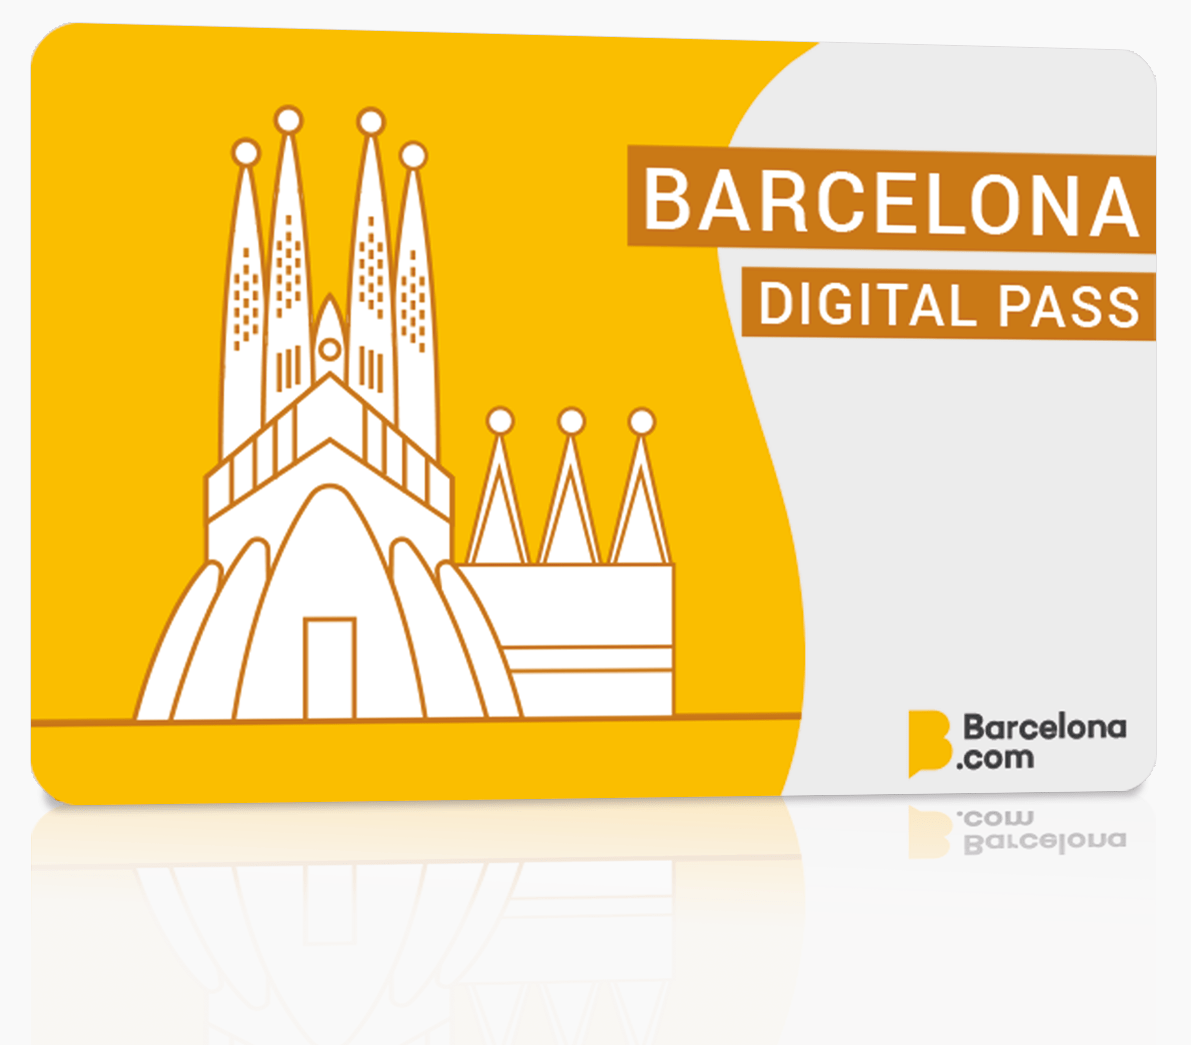 Barcelona City Pass - Entrada sin colas - Sagrada Familia - Park Guell - Aerobus - Hop on hop off touristic bus